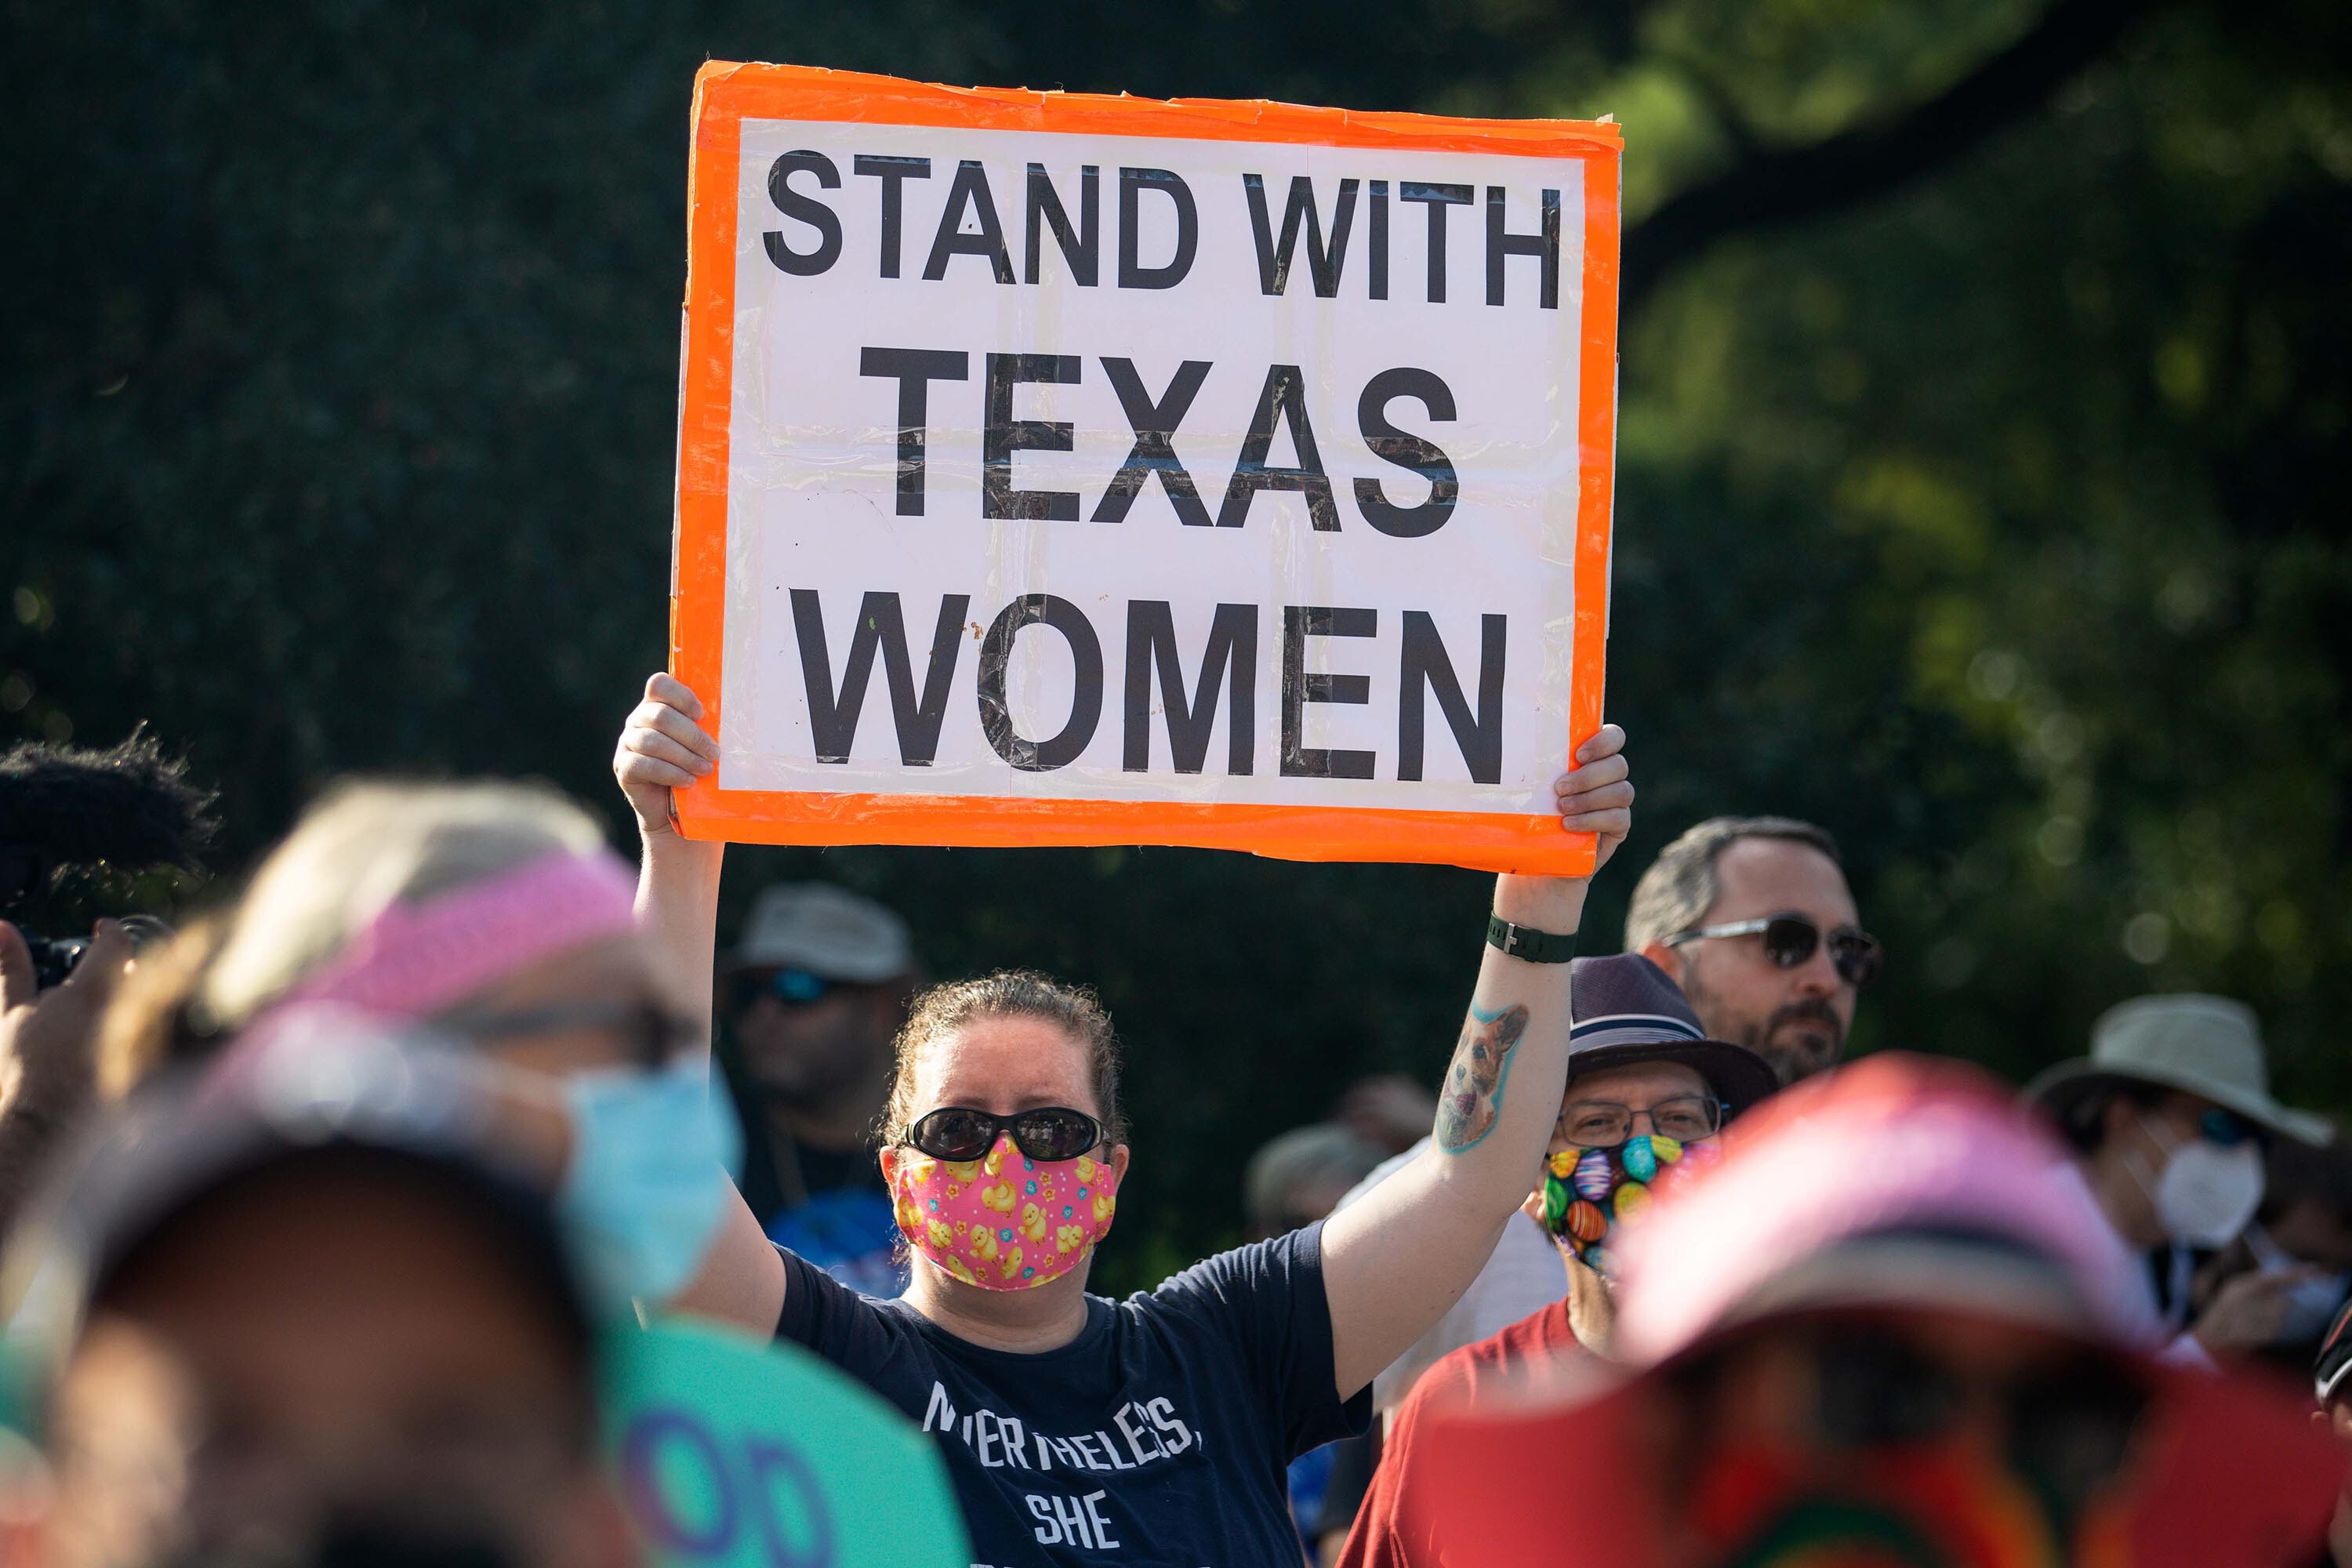 Appeals court puts temporary hold on judge's order blocking Texas 6-week abortion ban